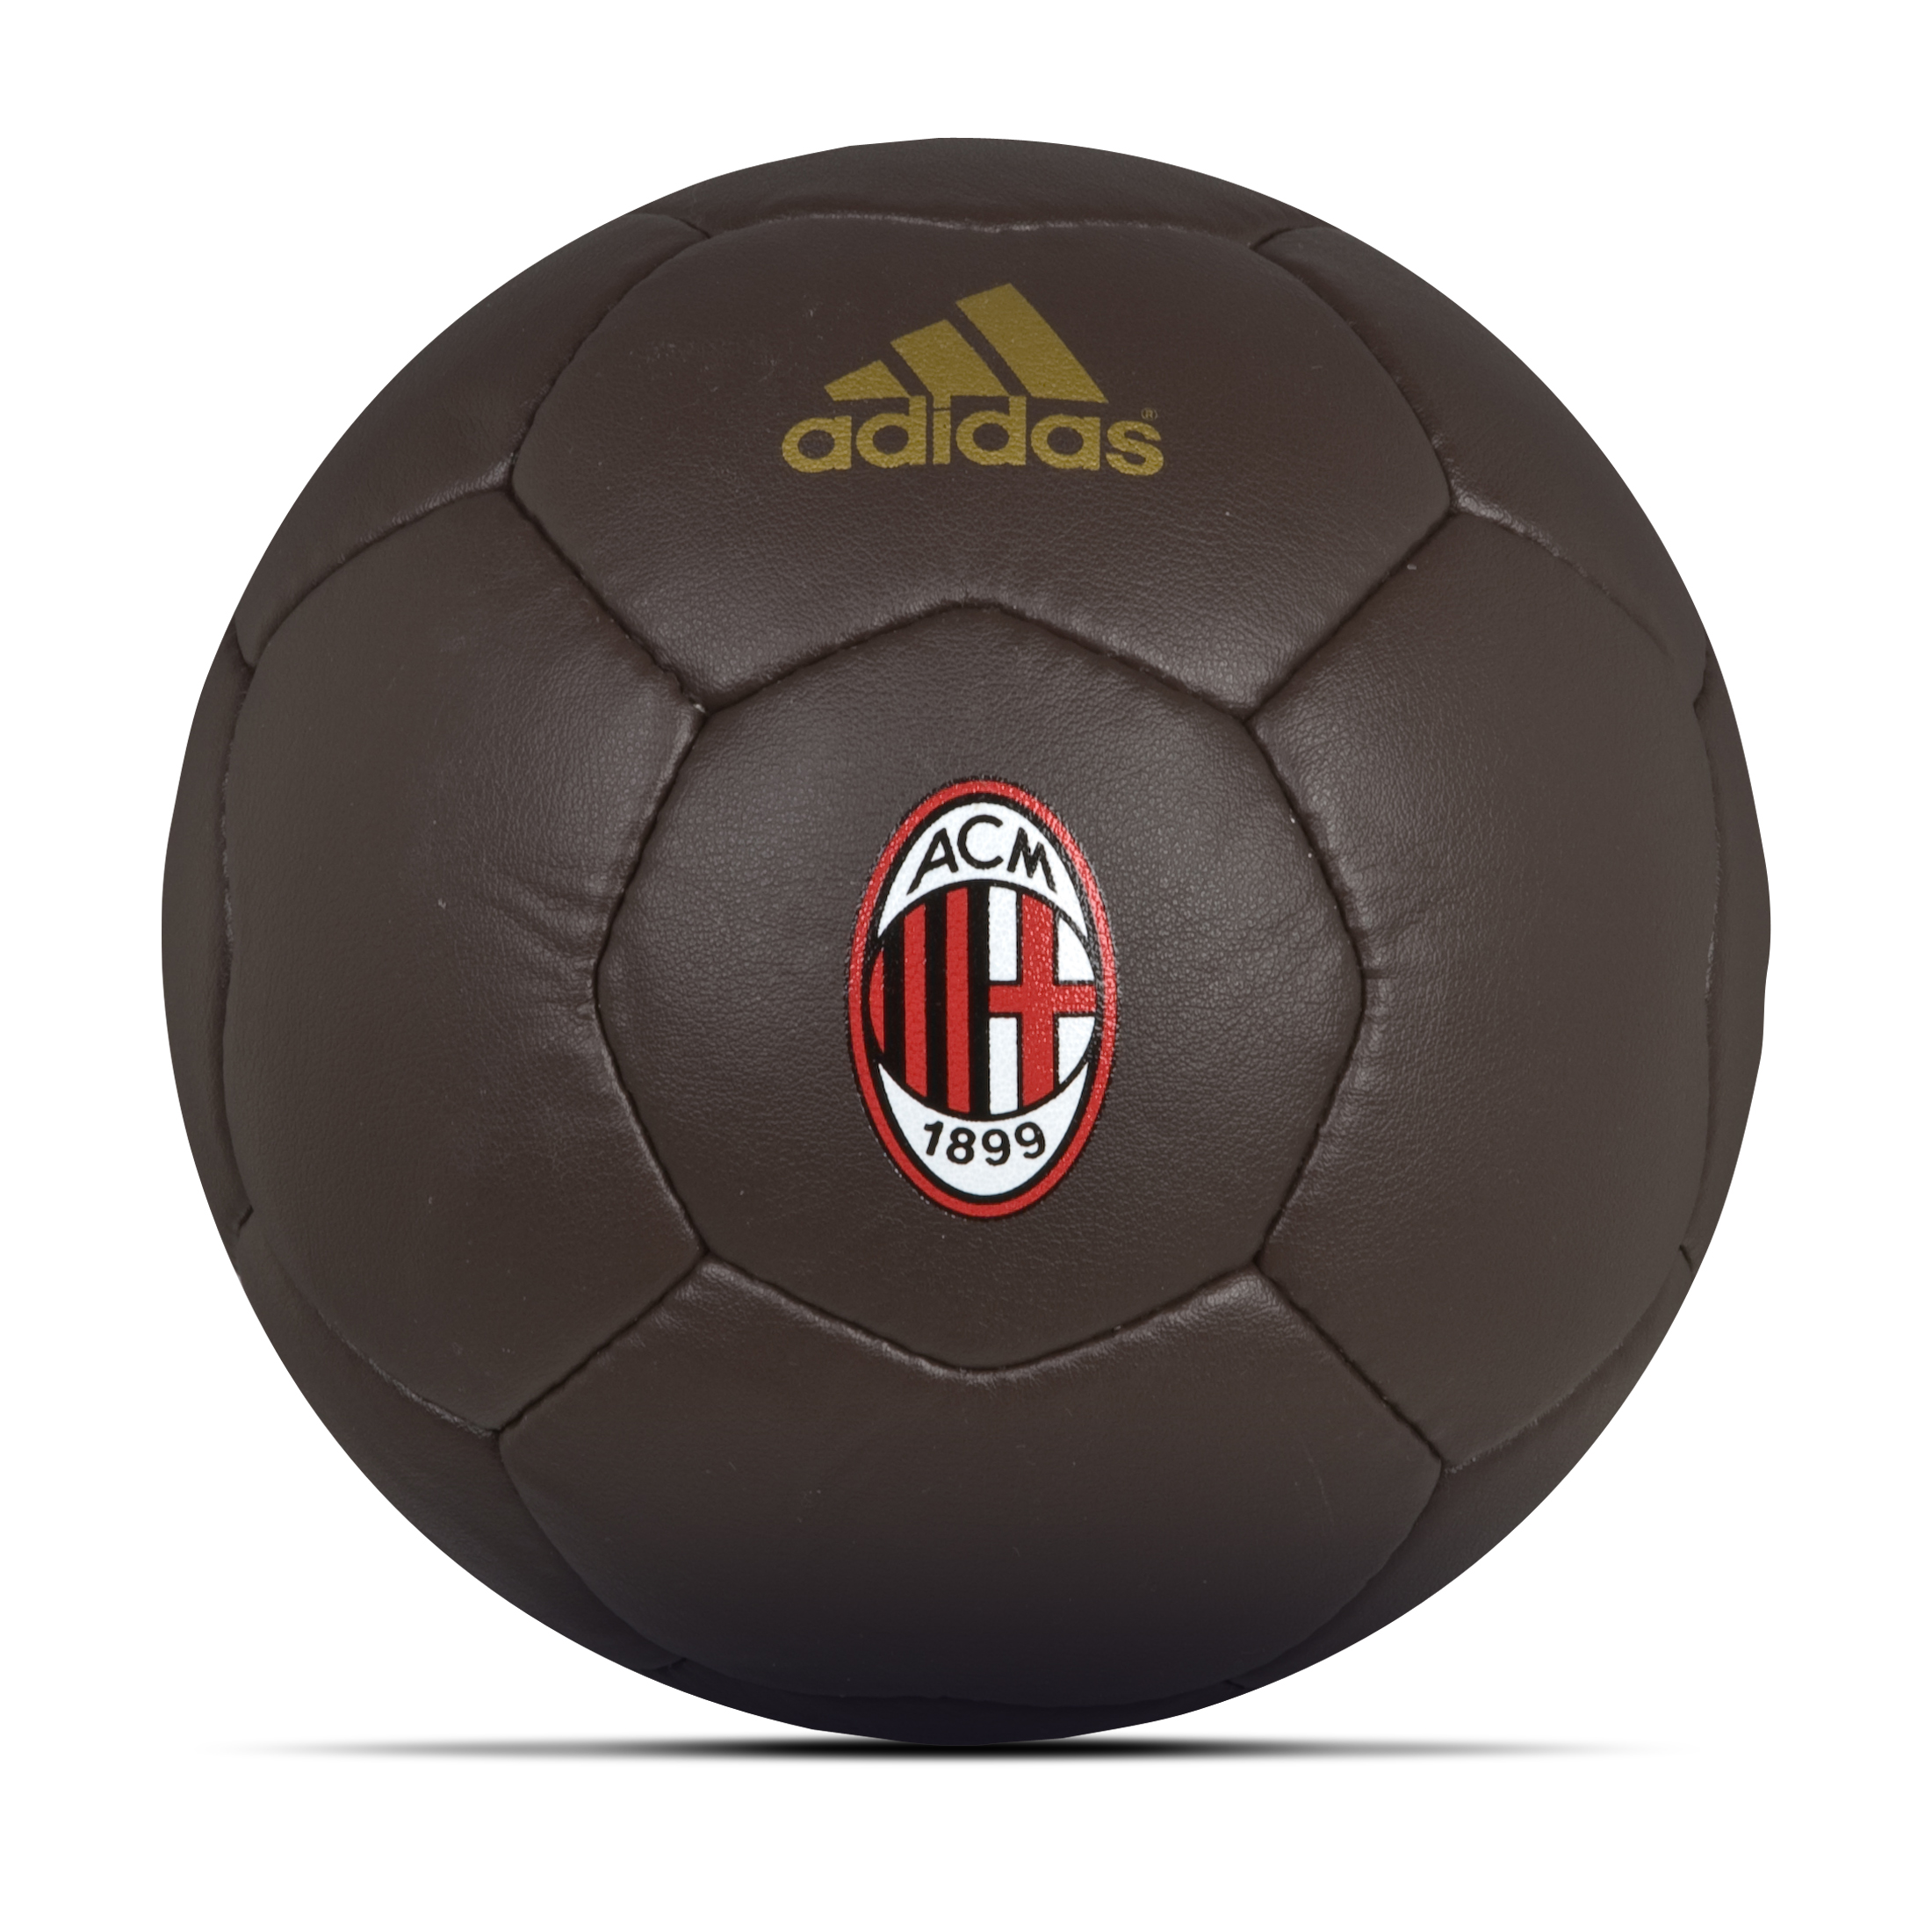 adidas AC Milan Crest Football - Leather Look